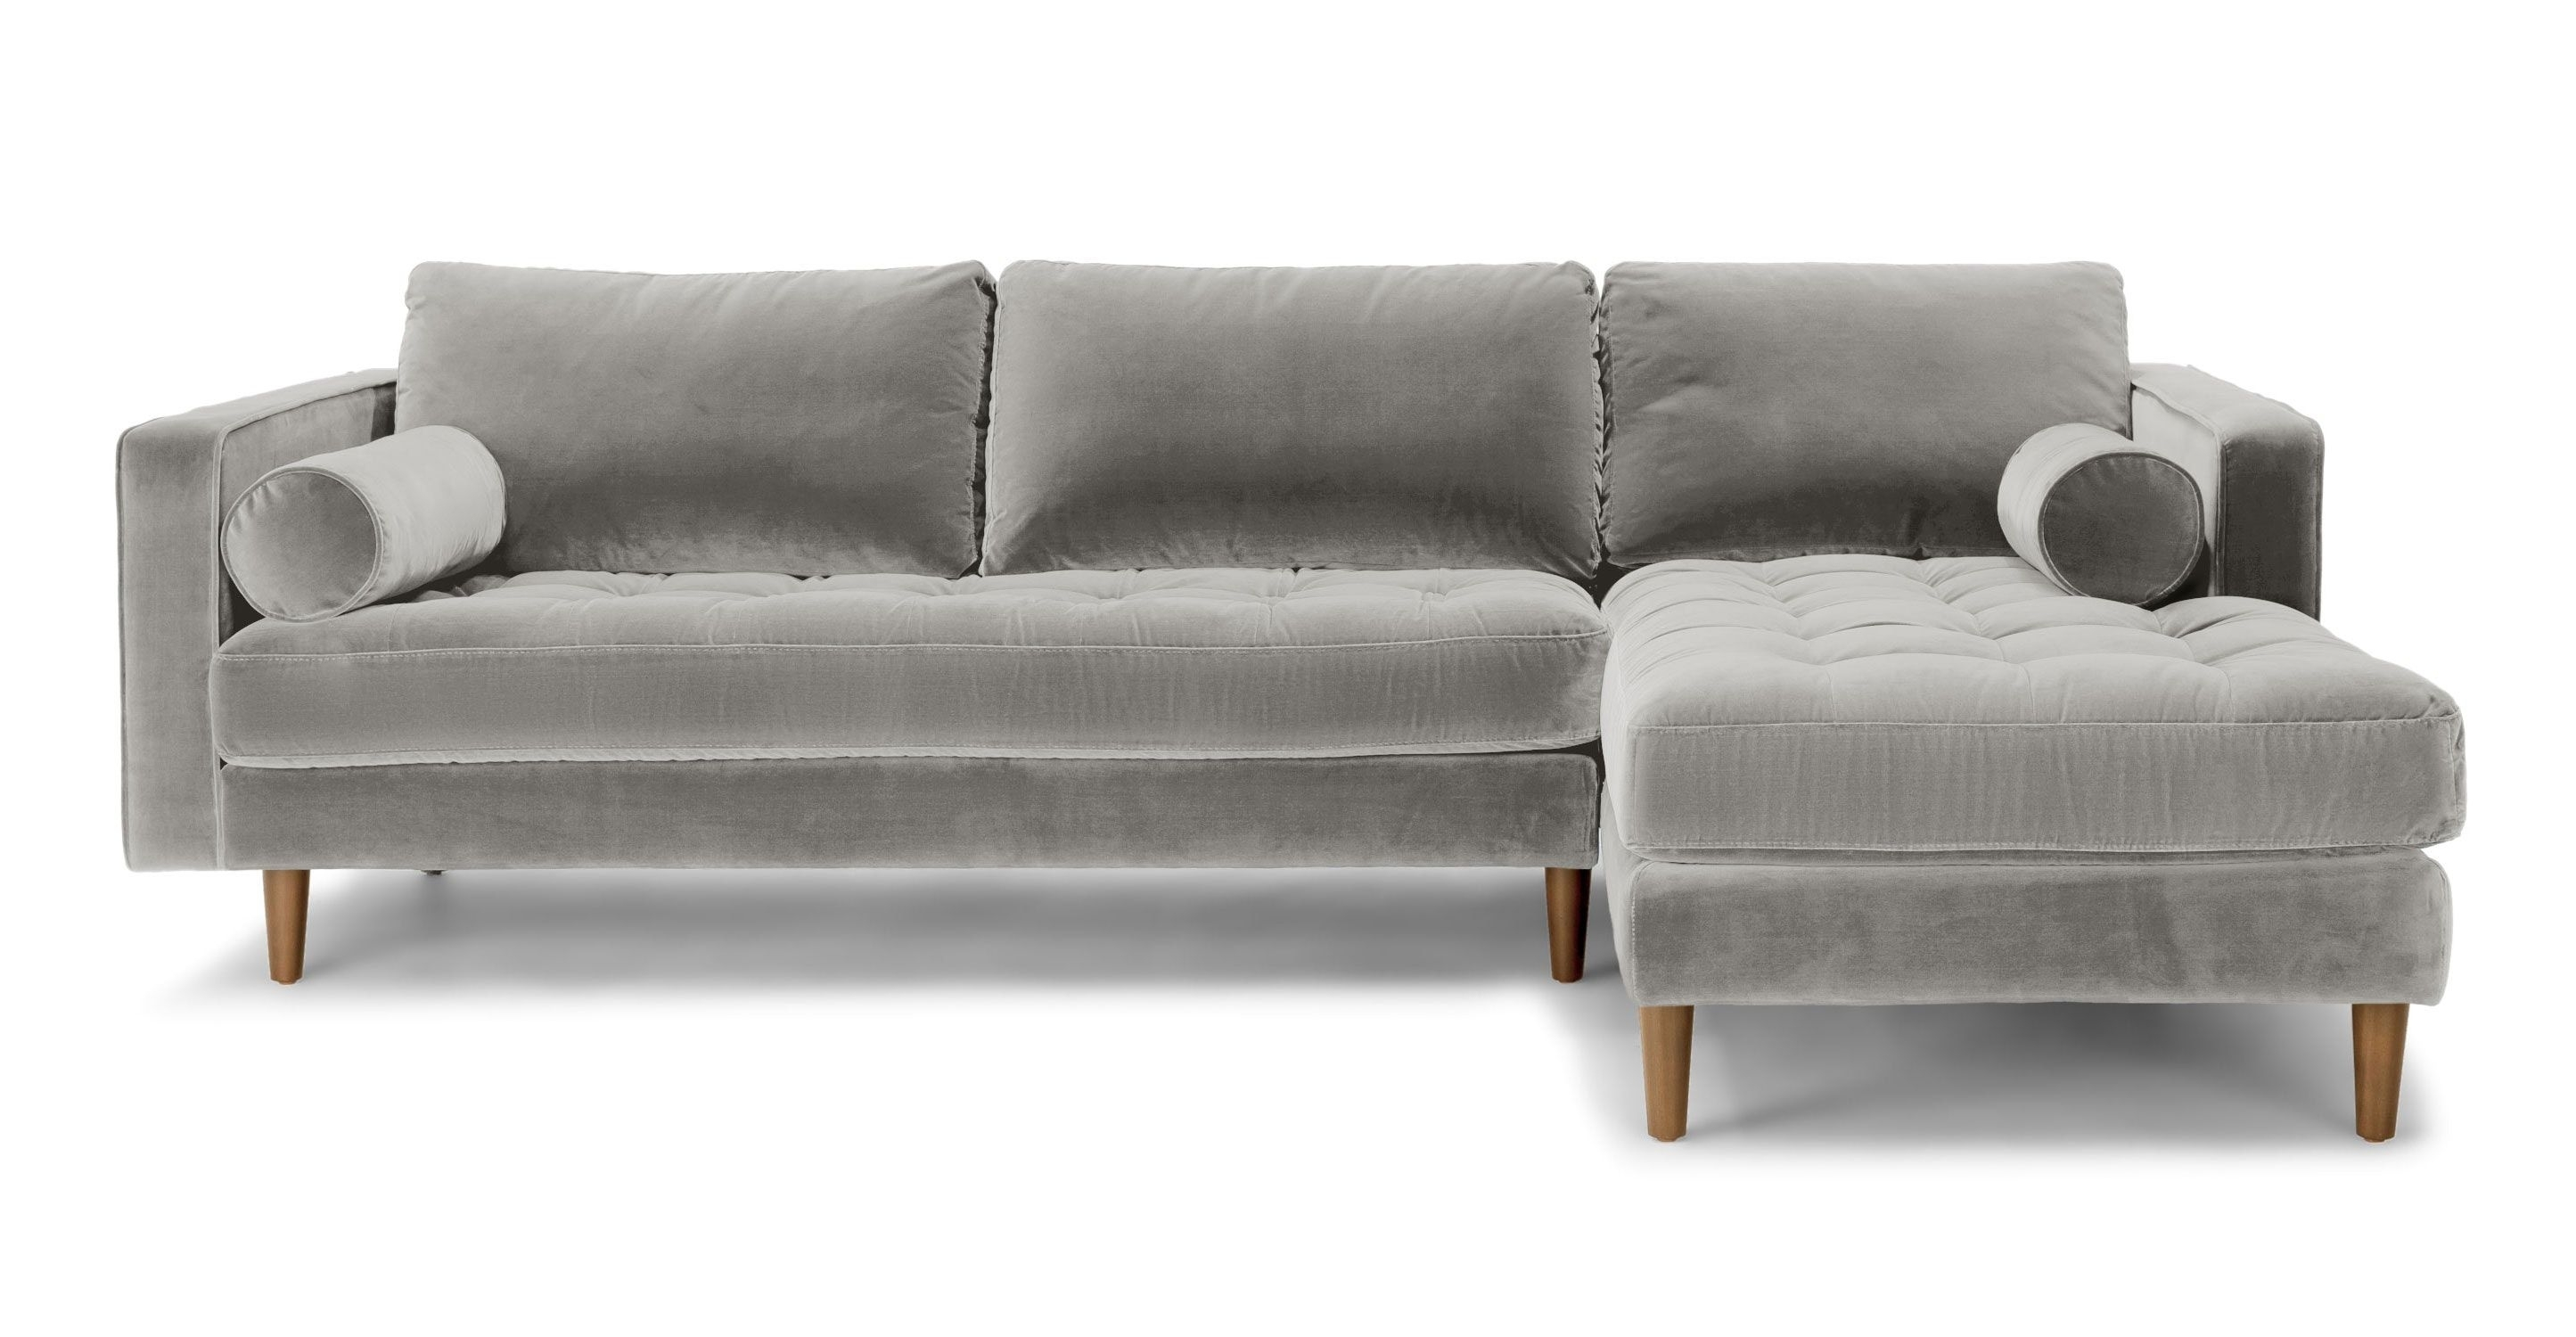 abbie right chaise sectional sofa with large cushions by england ottoman canada 10 collection of regina sofas ideas